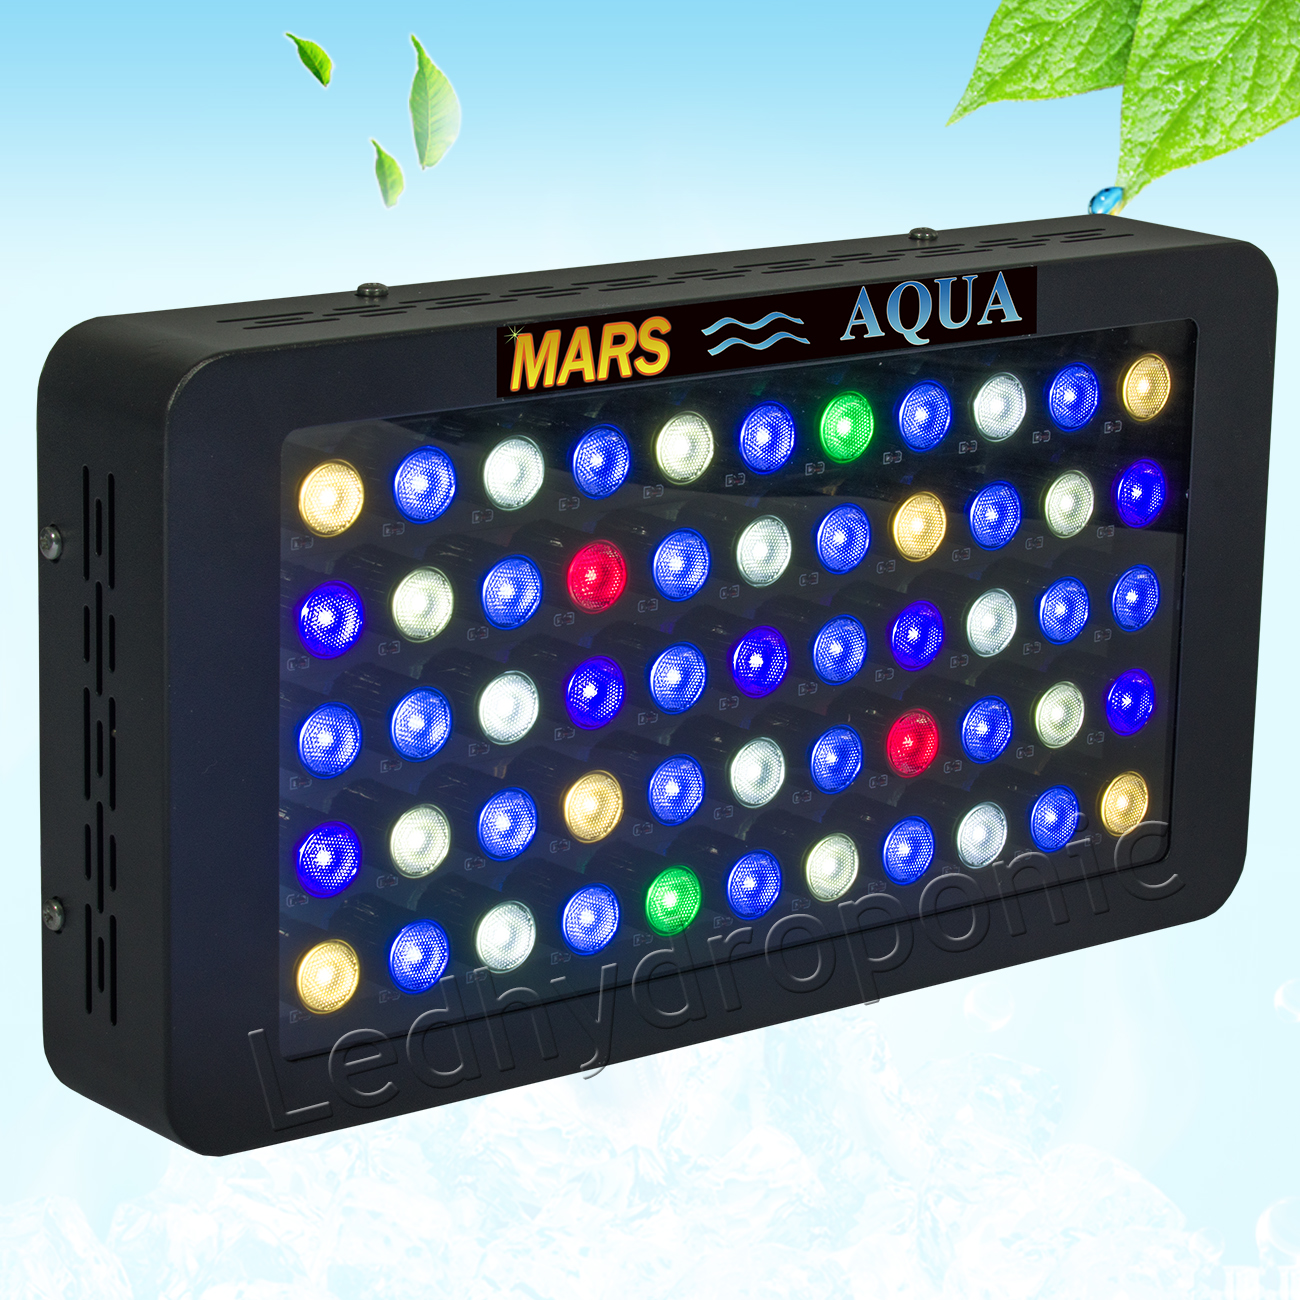 Marsaqua 165w Led Aquarium Light Dimmable Full Spectrum Reef Coral Sps Lps Tank